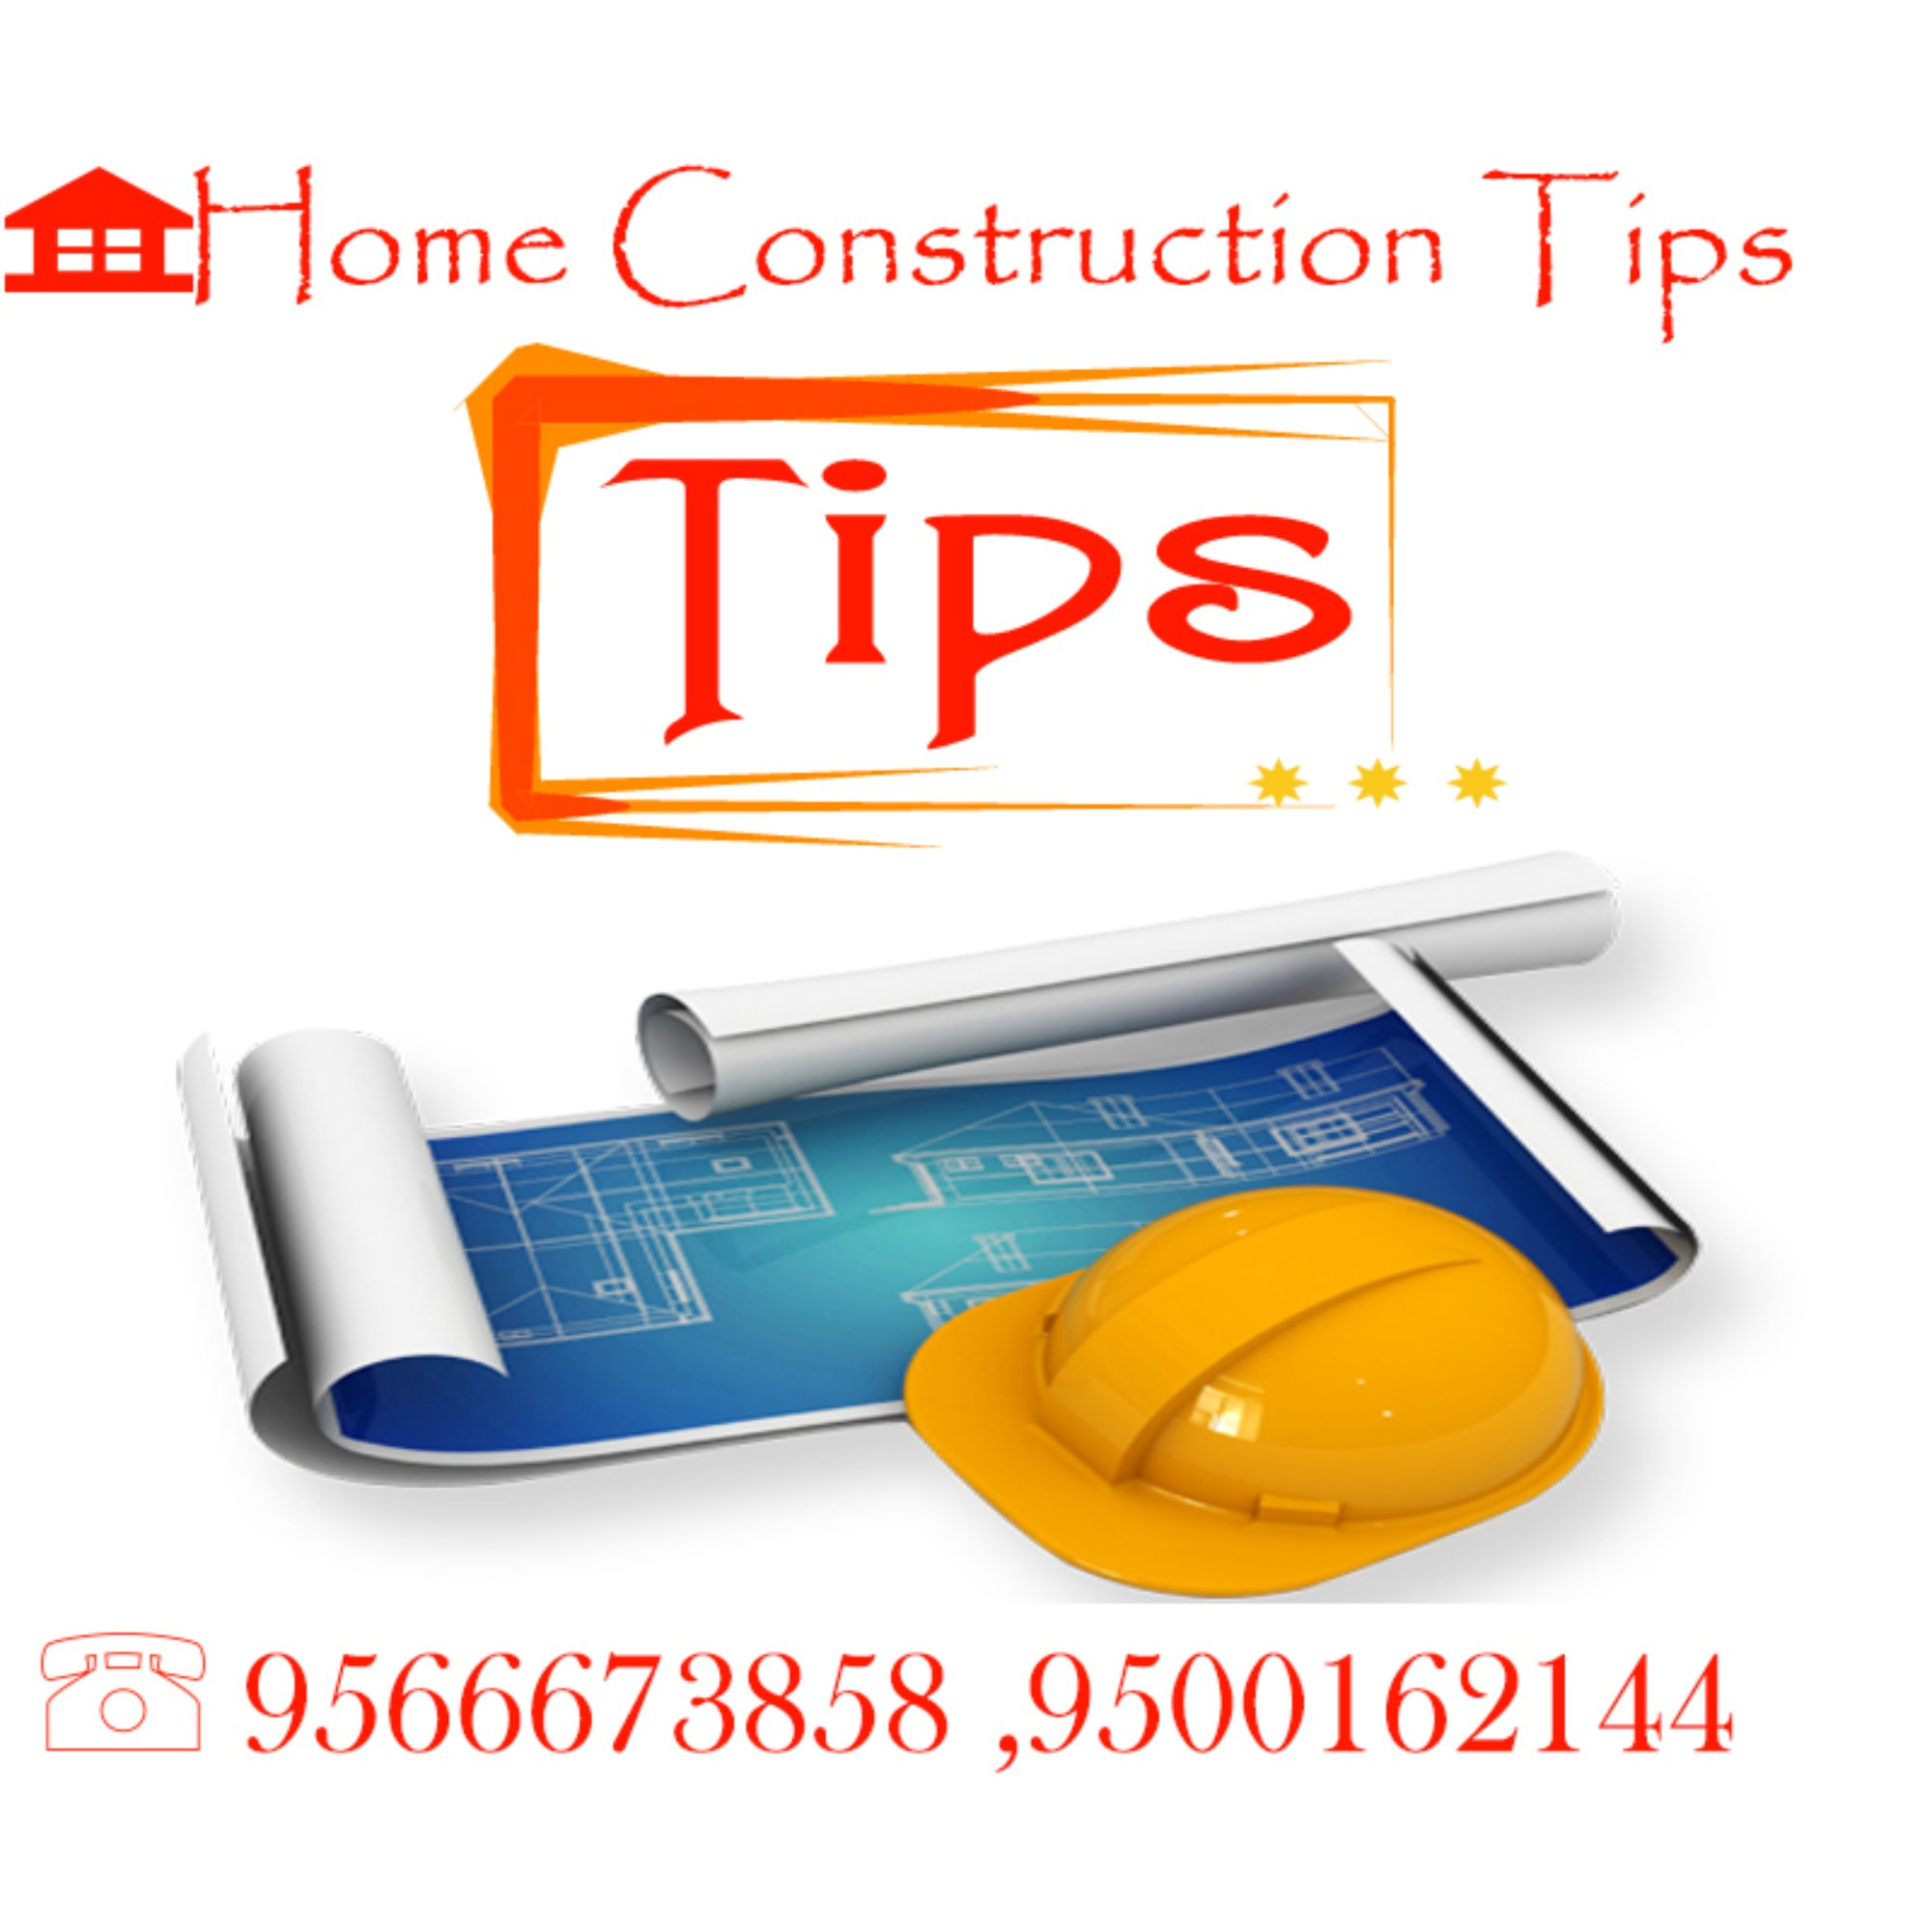 Dream clipart home construction Your Constructing Constructing in in